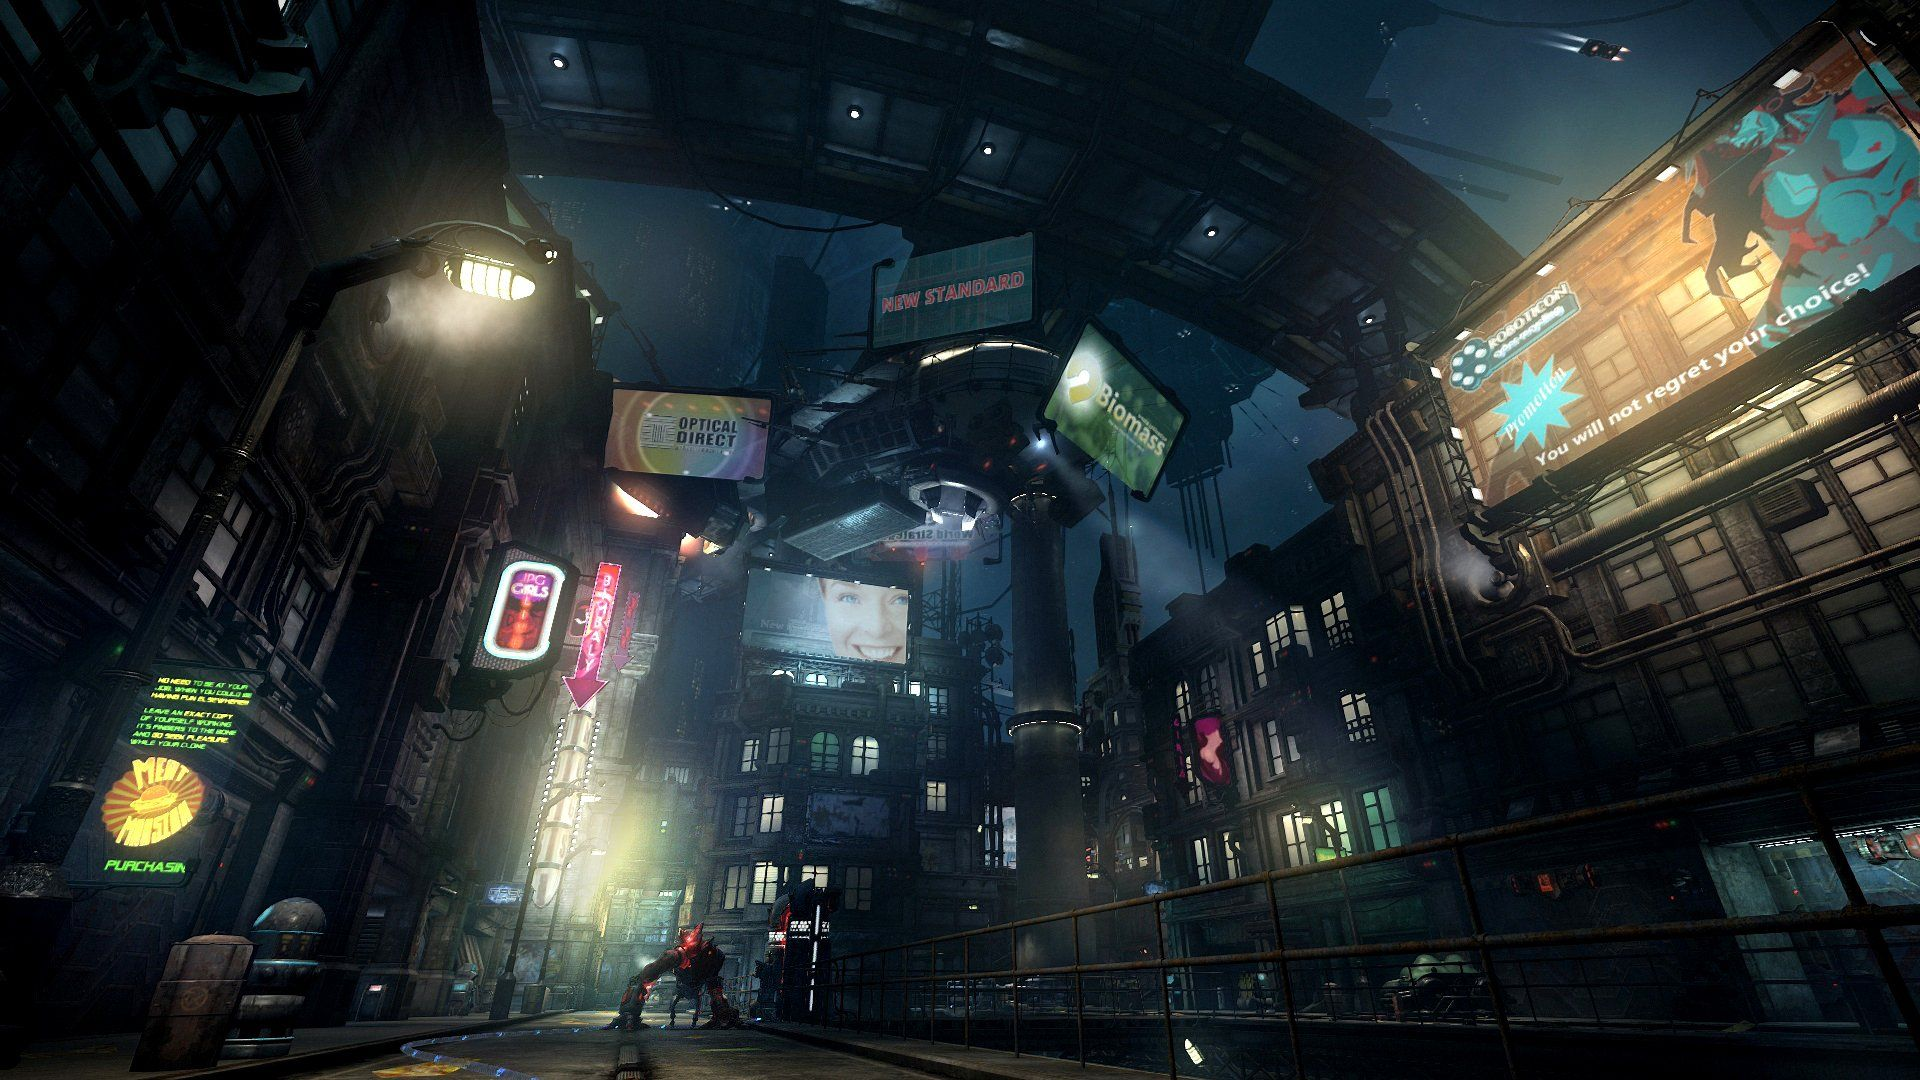 An Absolutely Cyberpunk City By Night From The Game Hard Reset Futuristic City Cyberpunk City Futuristic